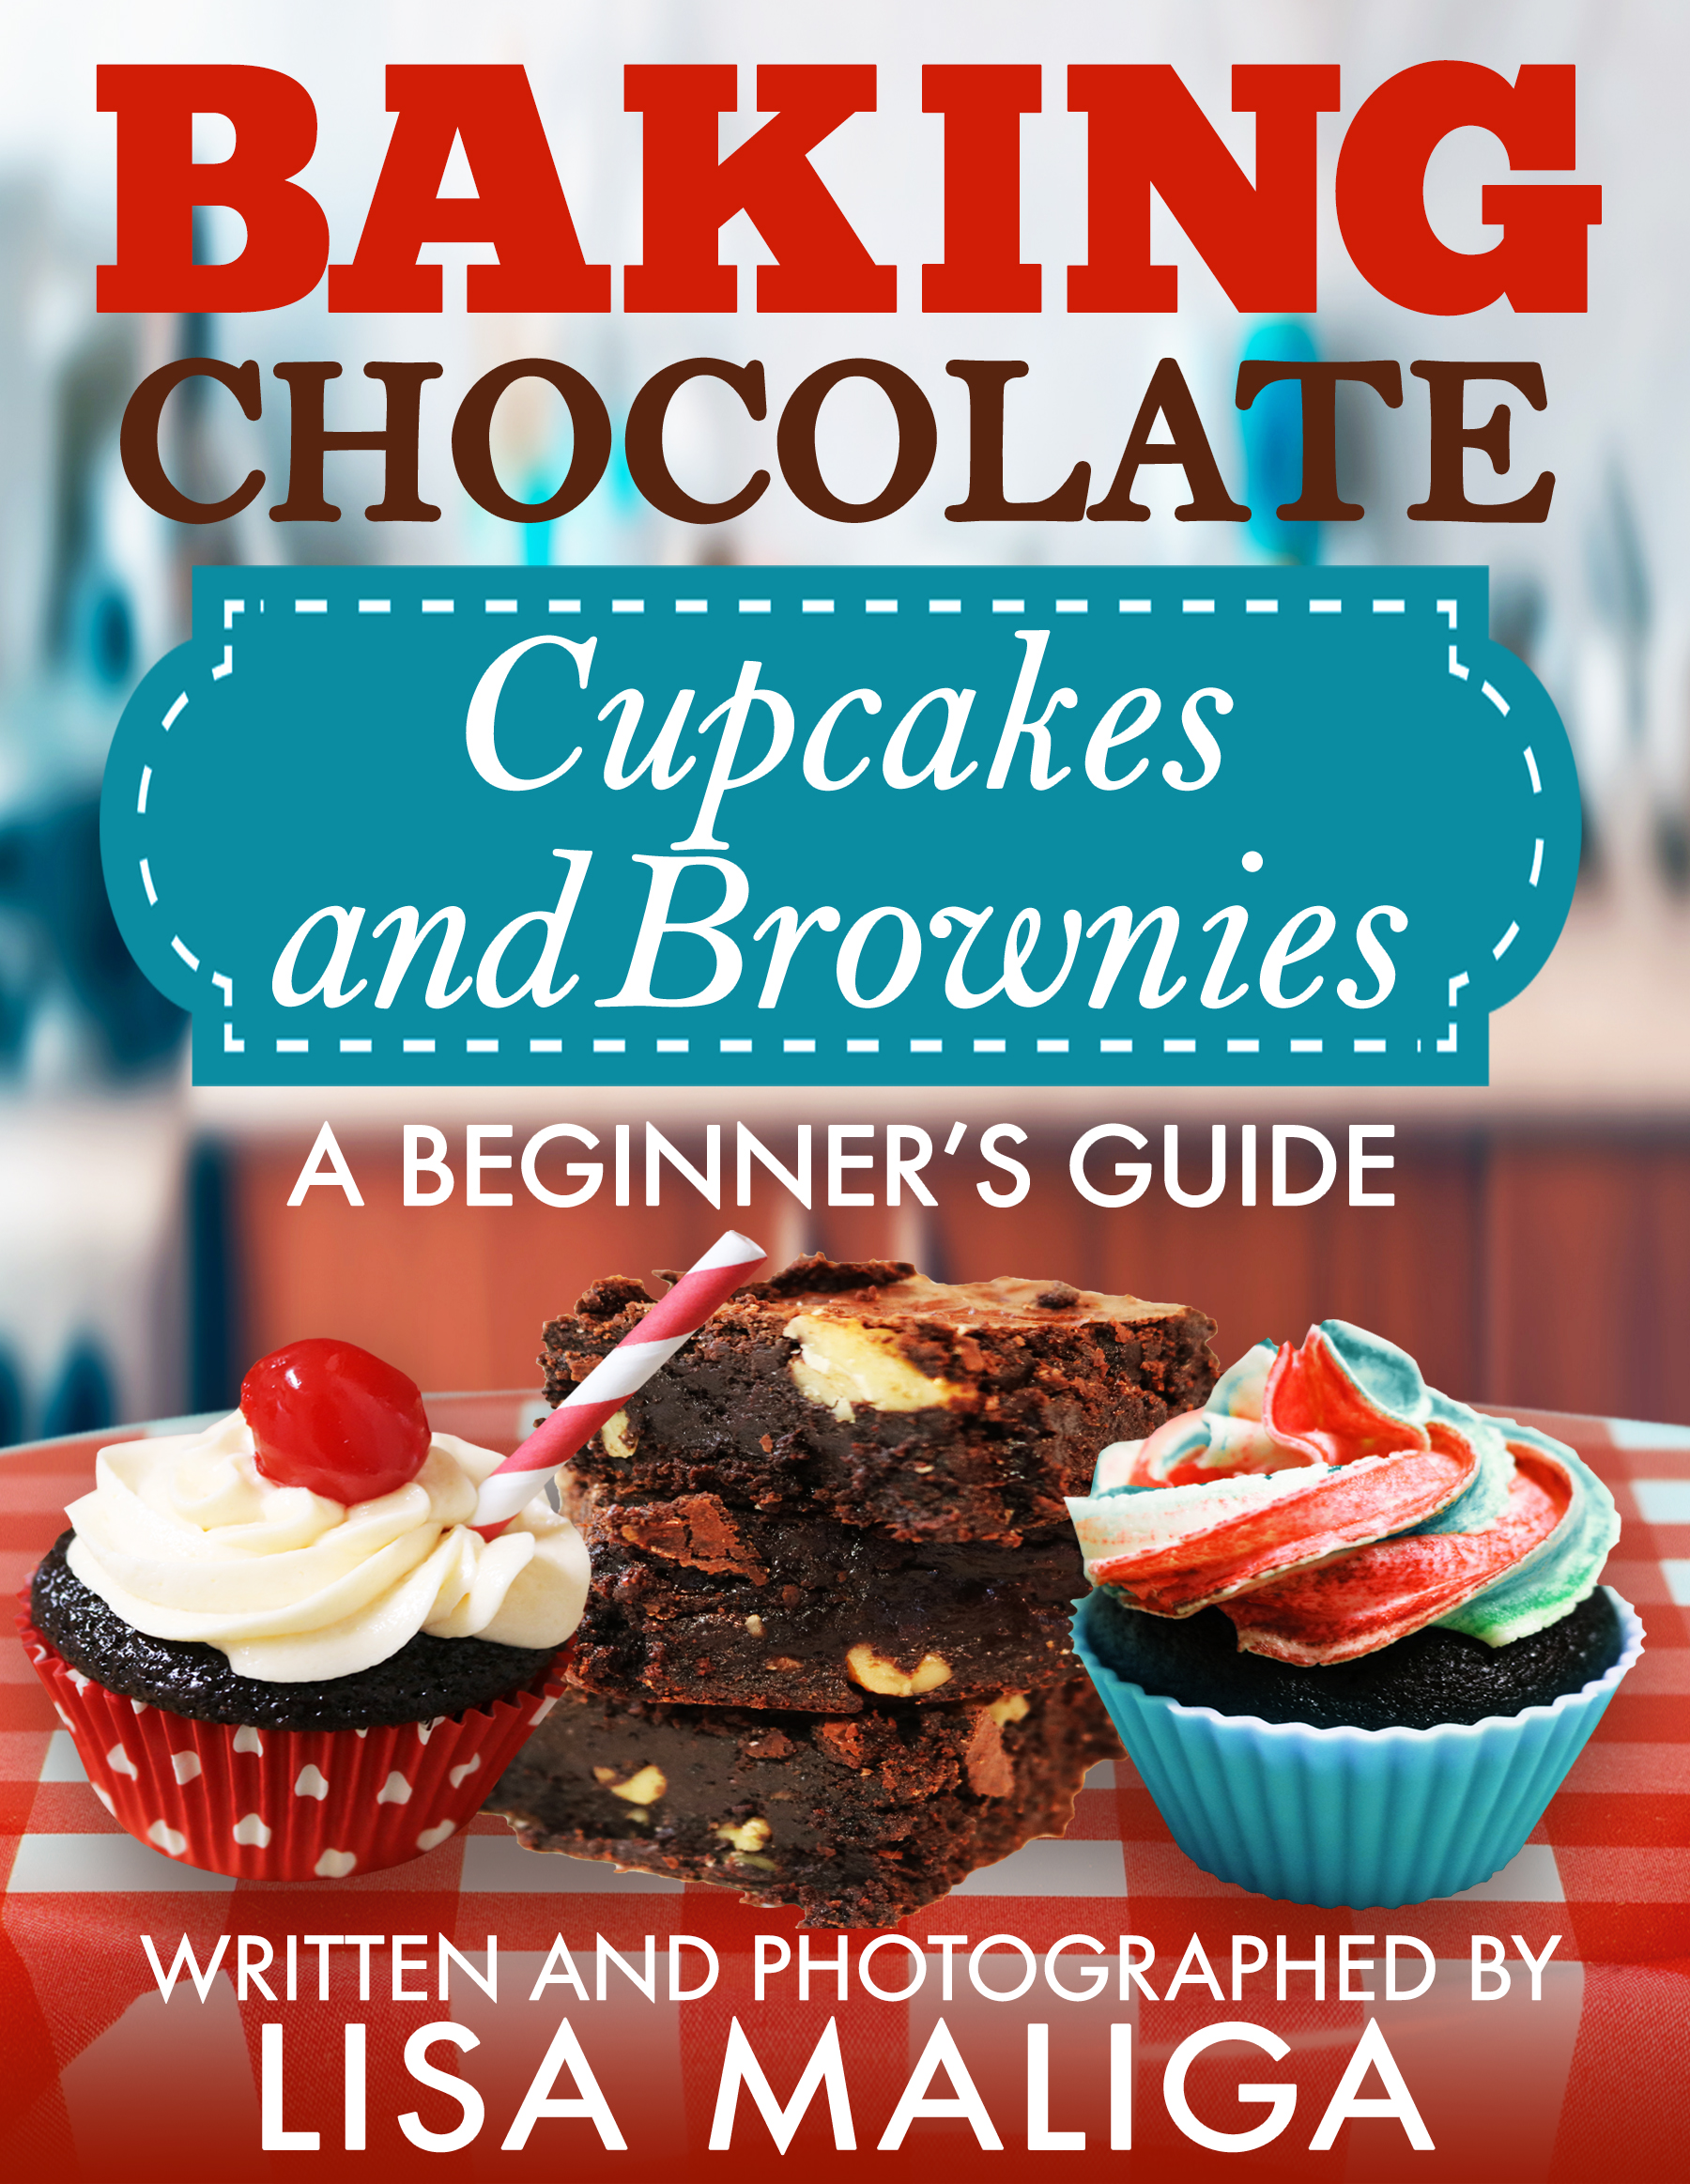 baking-chocolate-cupcakes-and-brownies-final.jpg